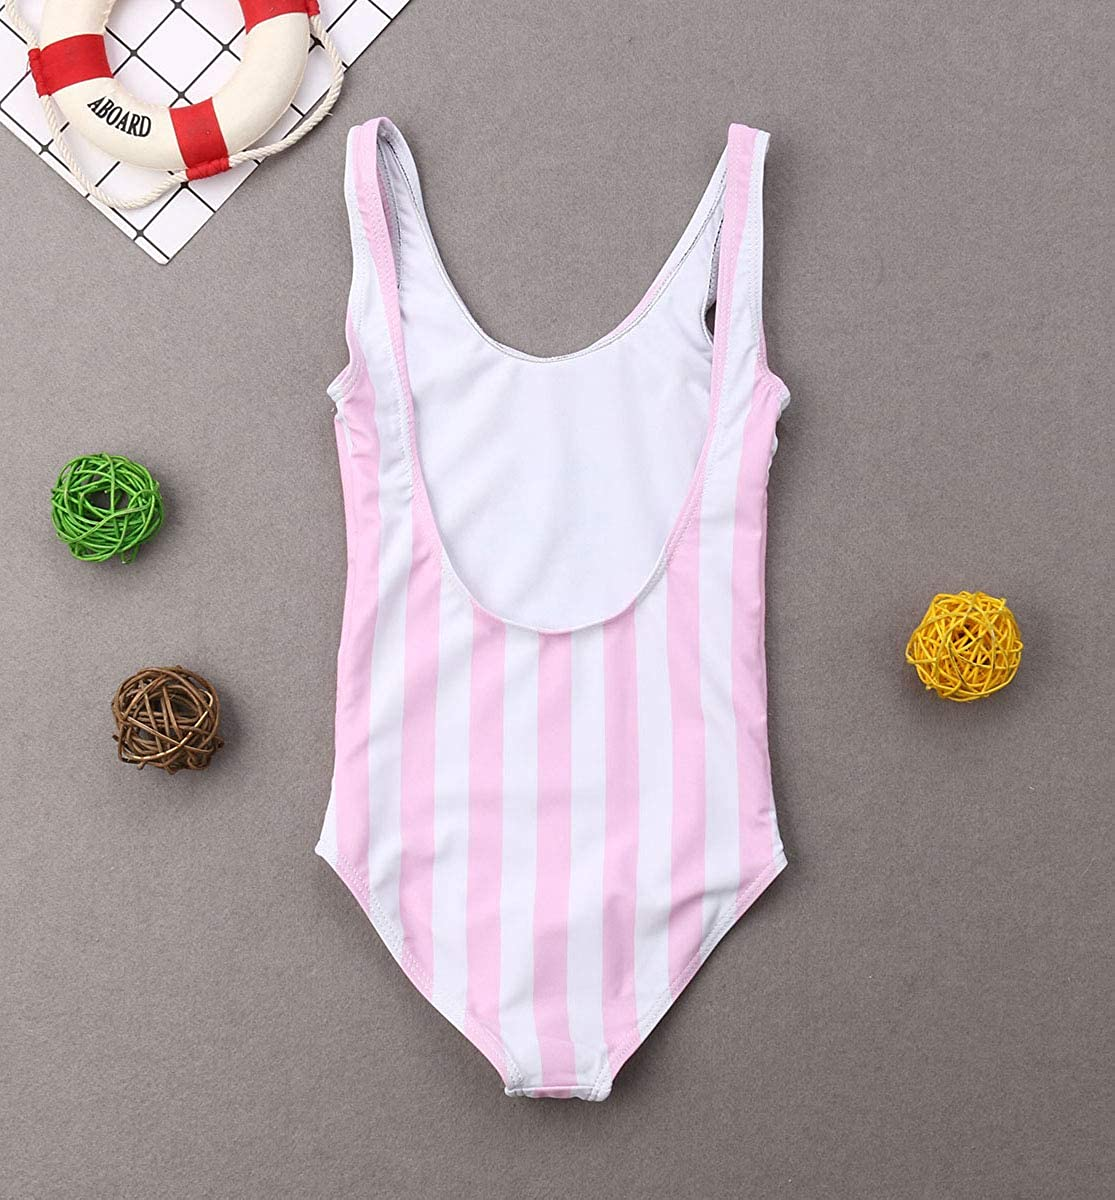 Family Matching Mother Daughter Striped Pineapple Print Monokini Swimsuit Mommy and Me One Piece Beachwear